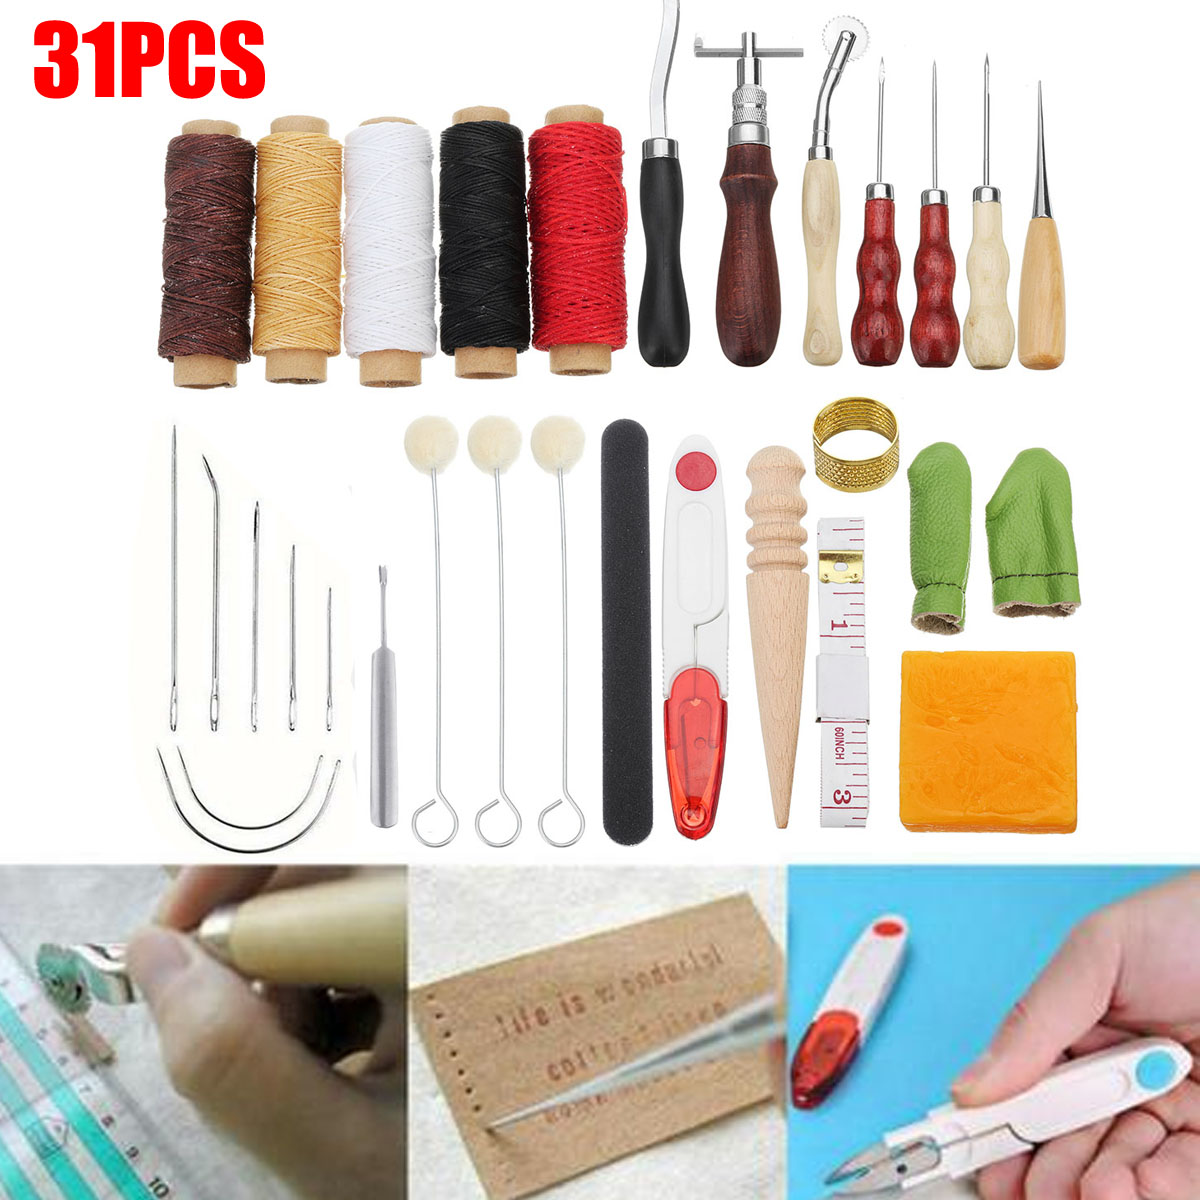 Professional 31Pcs Leathercraft Tools Set Hand Sewing Stitching Punch Carving Work Saddle Leather Craft AccessoriesProfessional 31Pcs Leathercraft Tools Set Hand Sewing Stitching Punch Carving Work Saddle Leather Craft Accessories